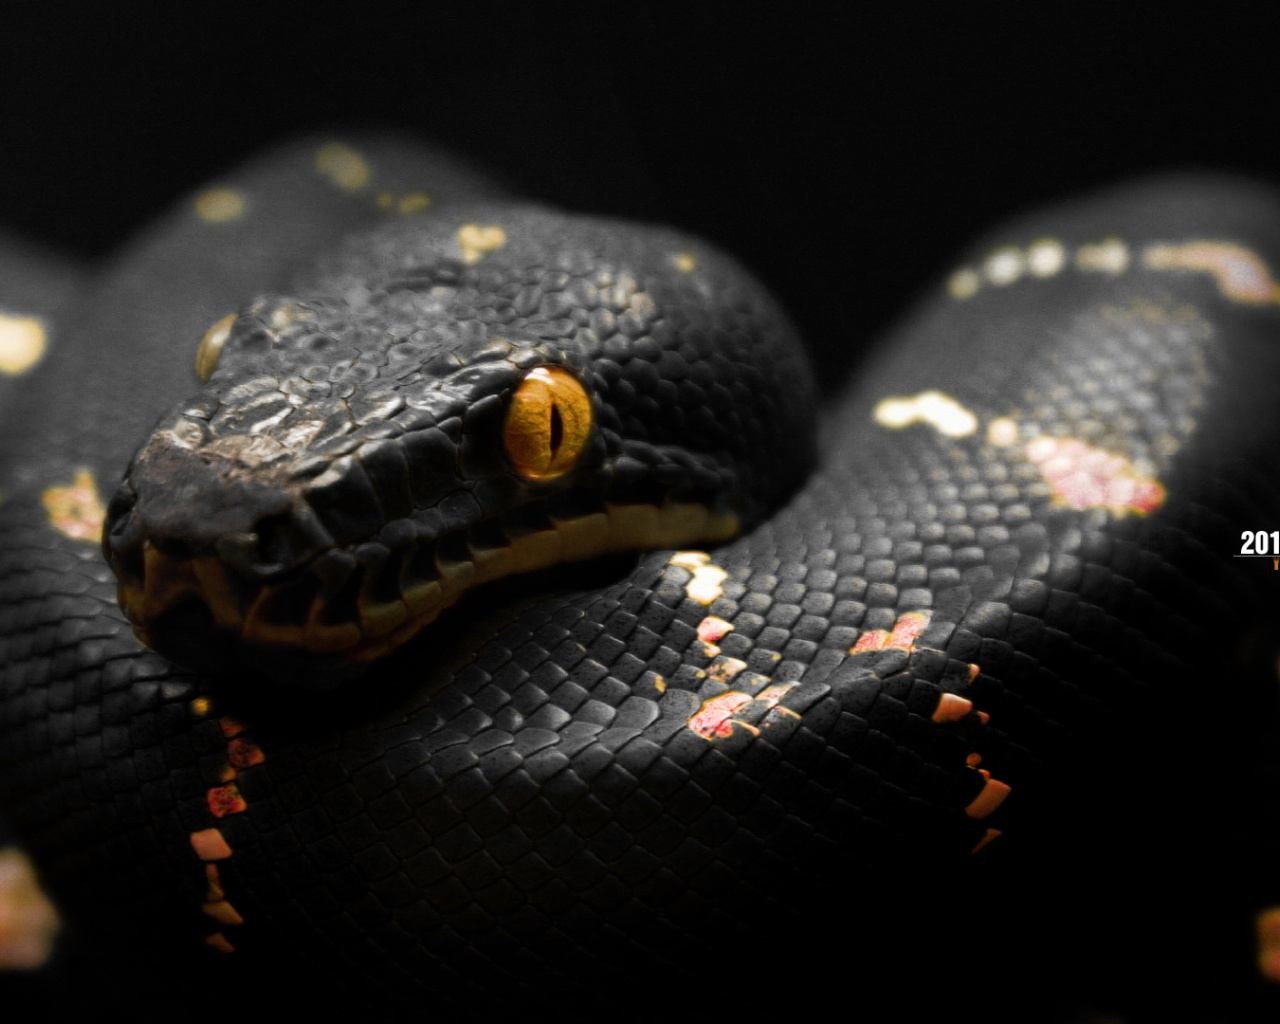 Snakes HD Wallpapers – wallpaper202